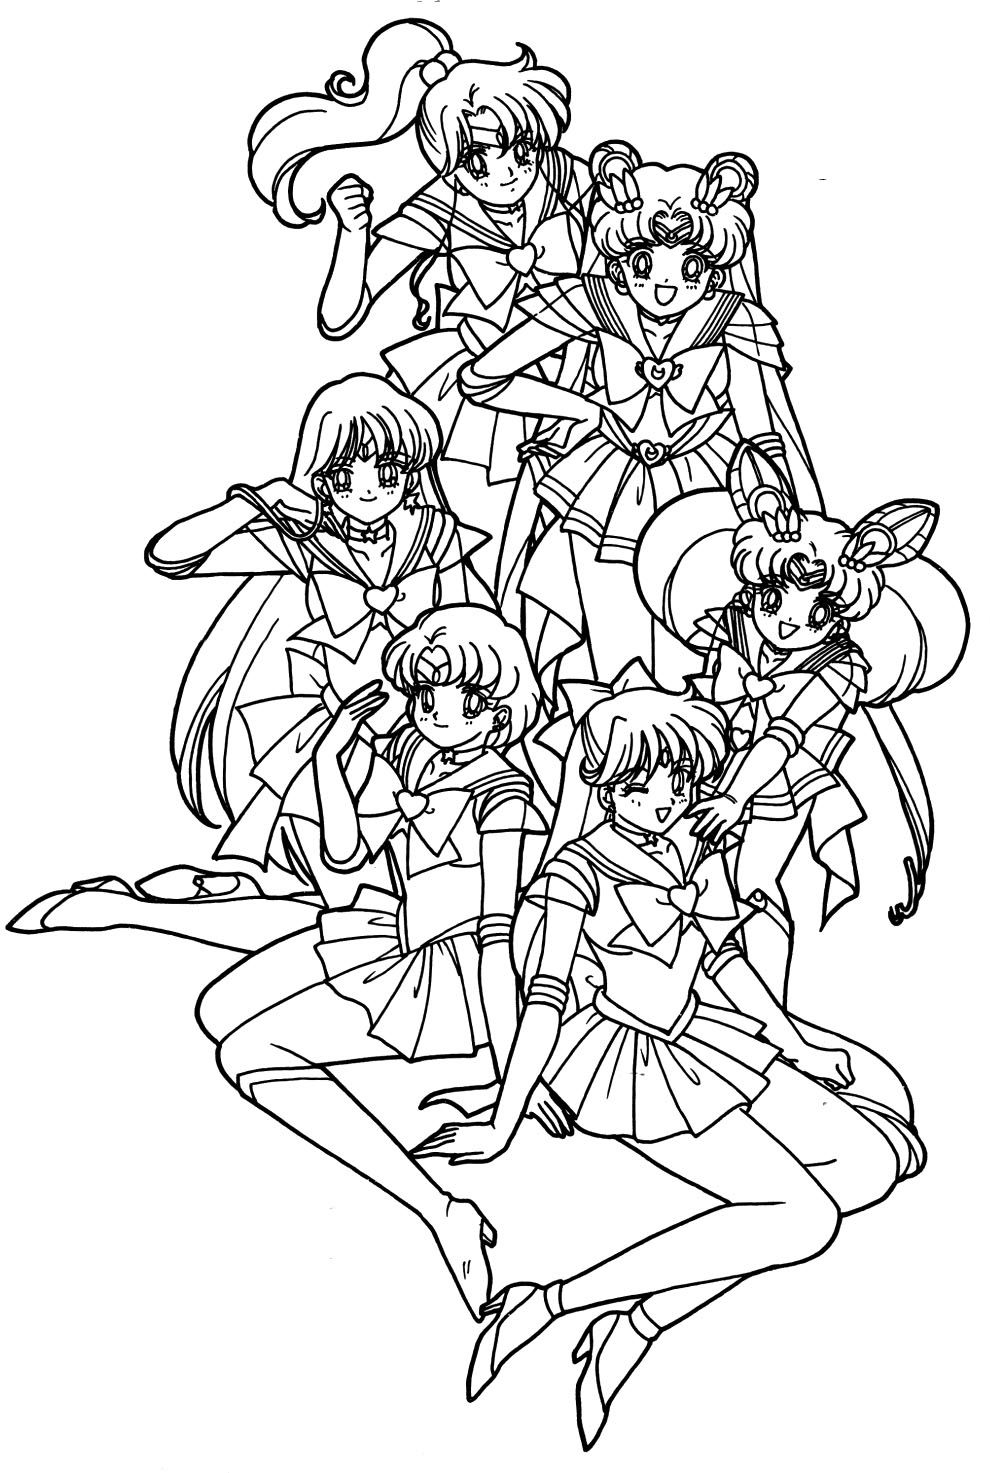 sailor moon really like with her friend coloring pages